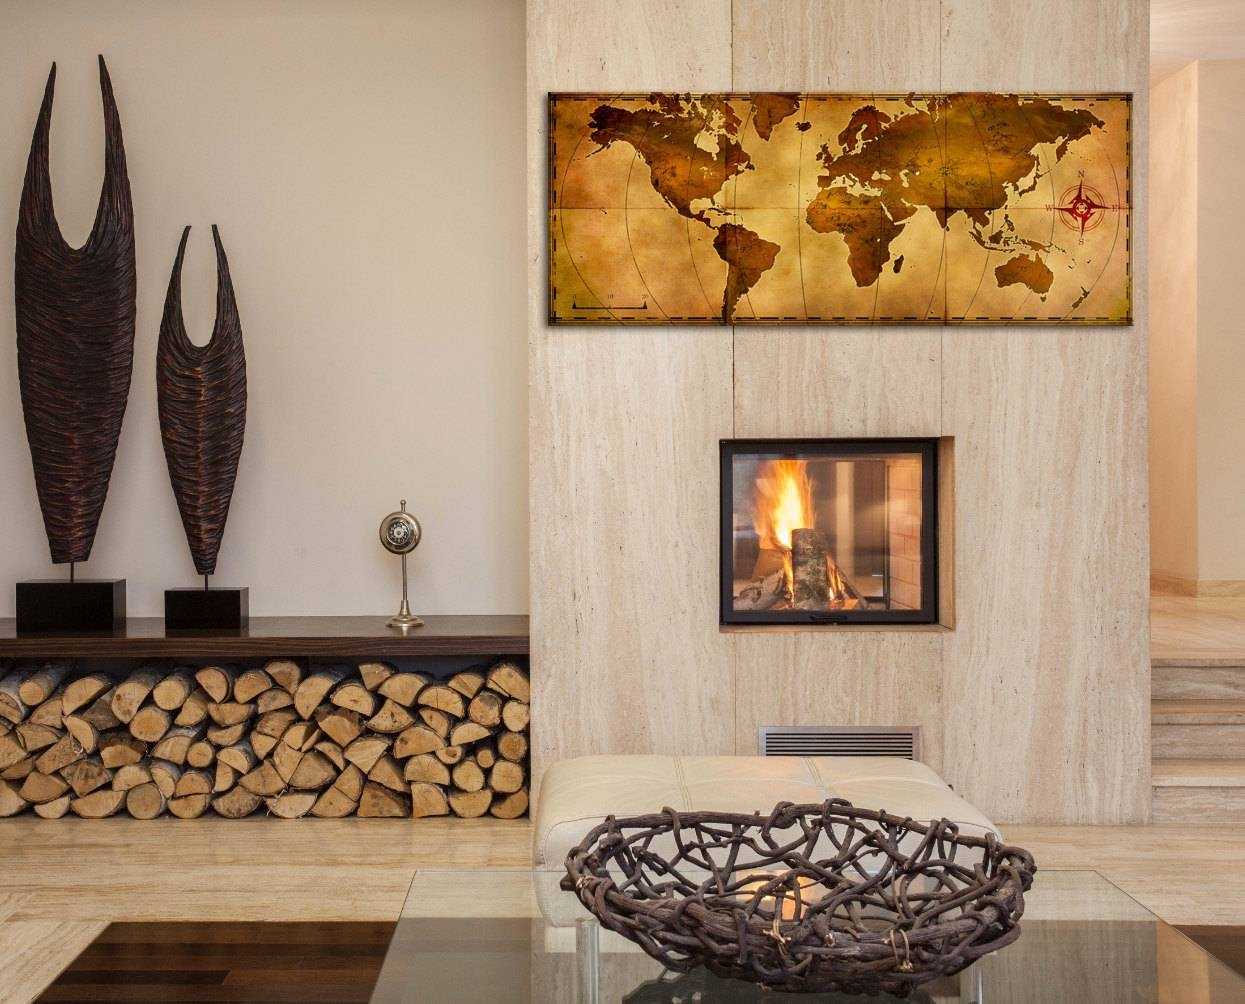 World Map Wall Art 'old World Map' Aged Antique Style Inside 2018 Treasure Map Wall Art (View 19 of 20)